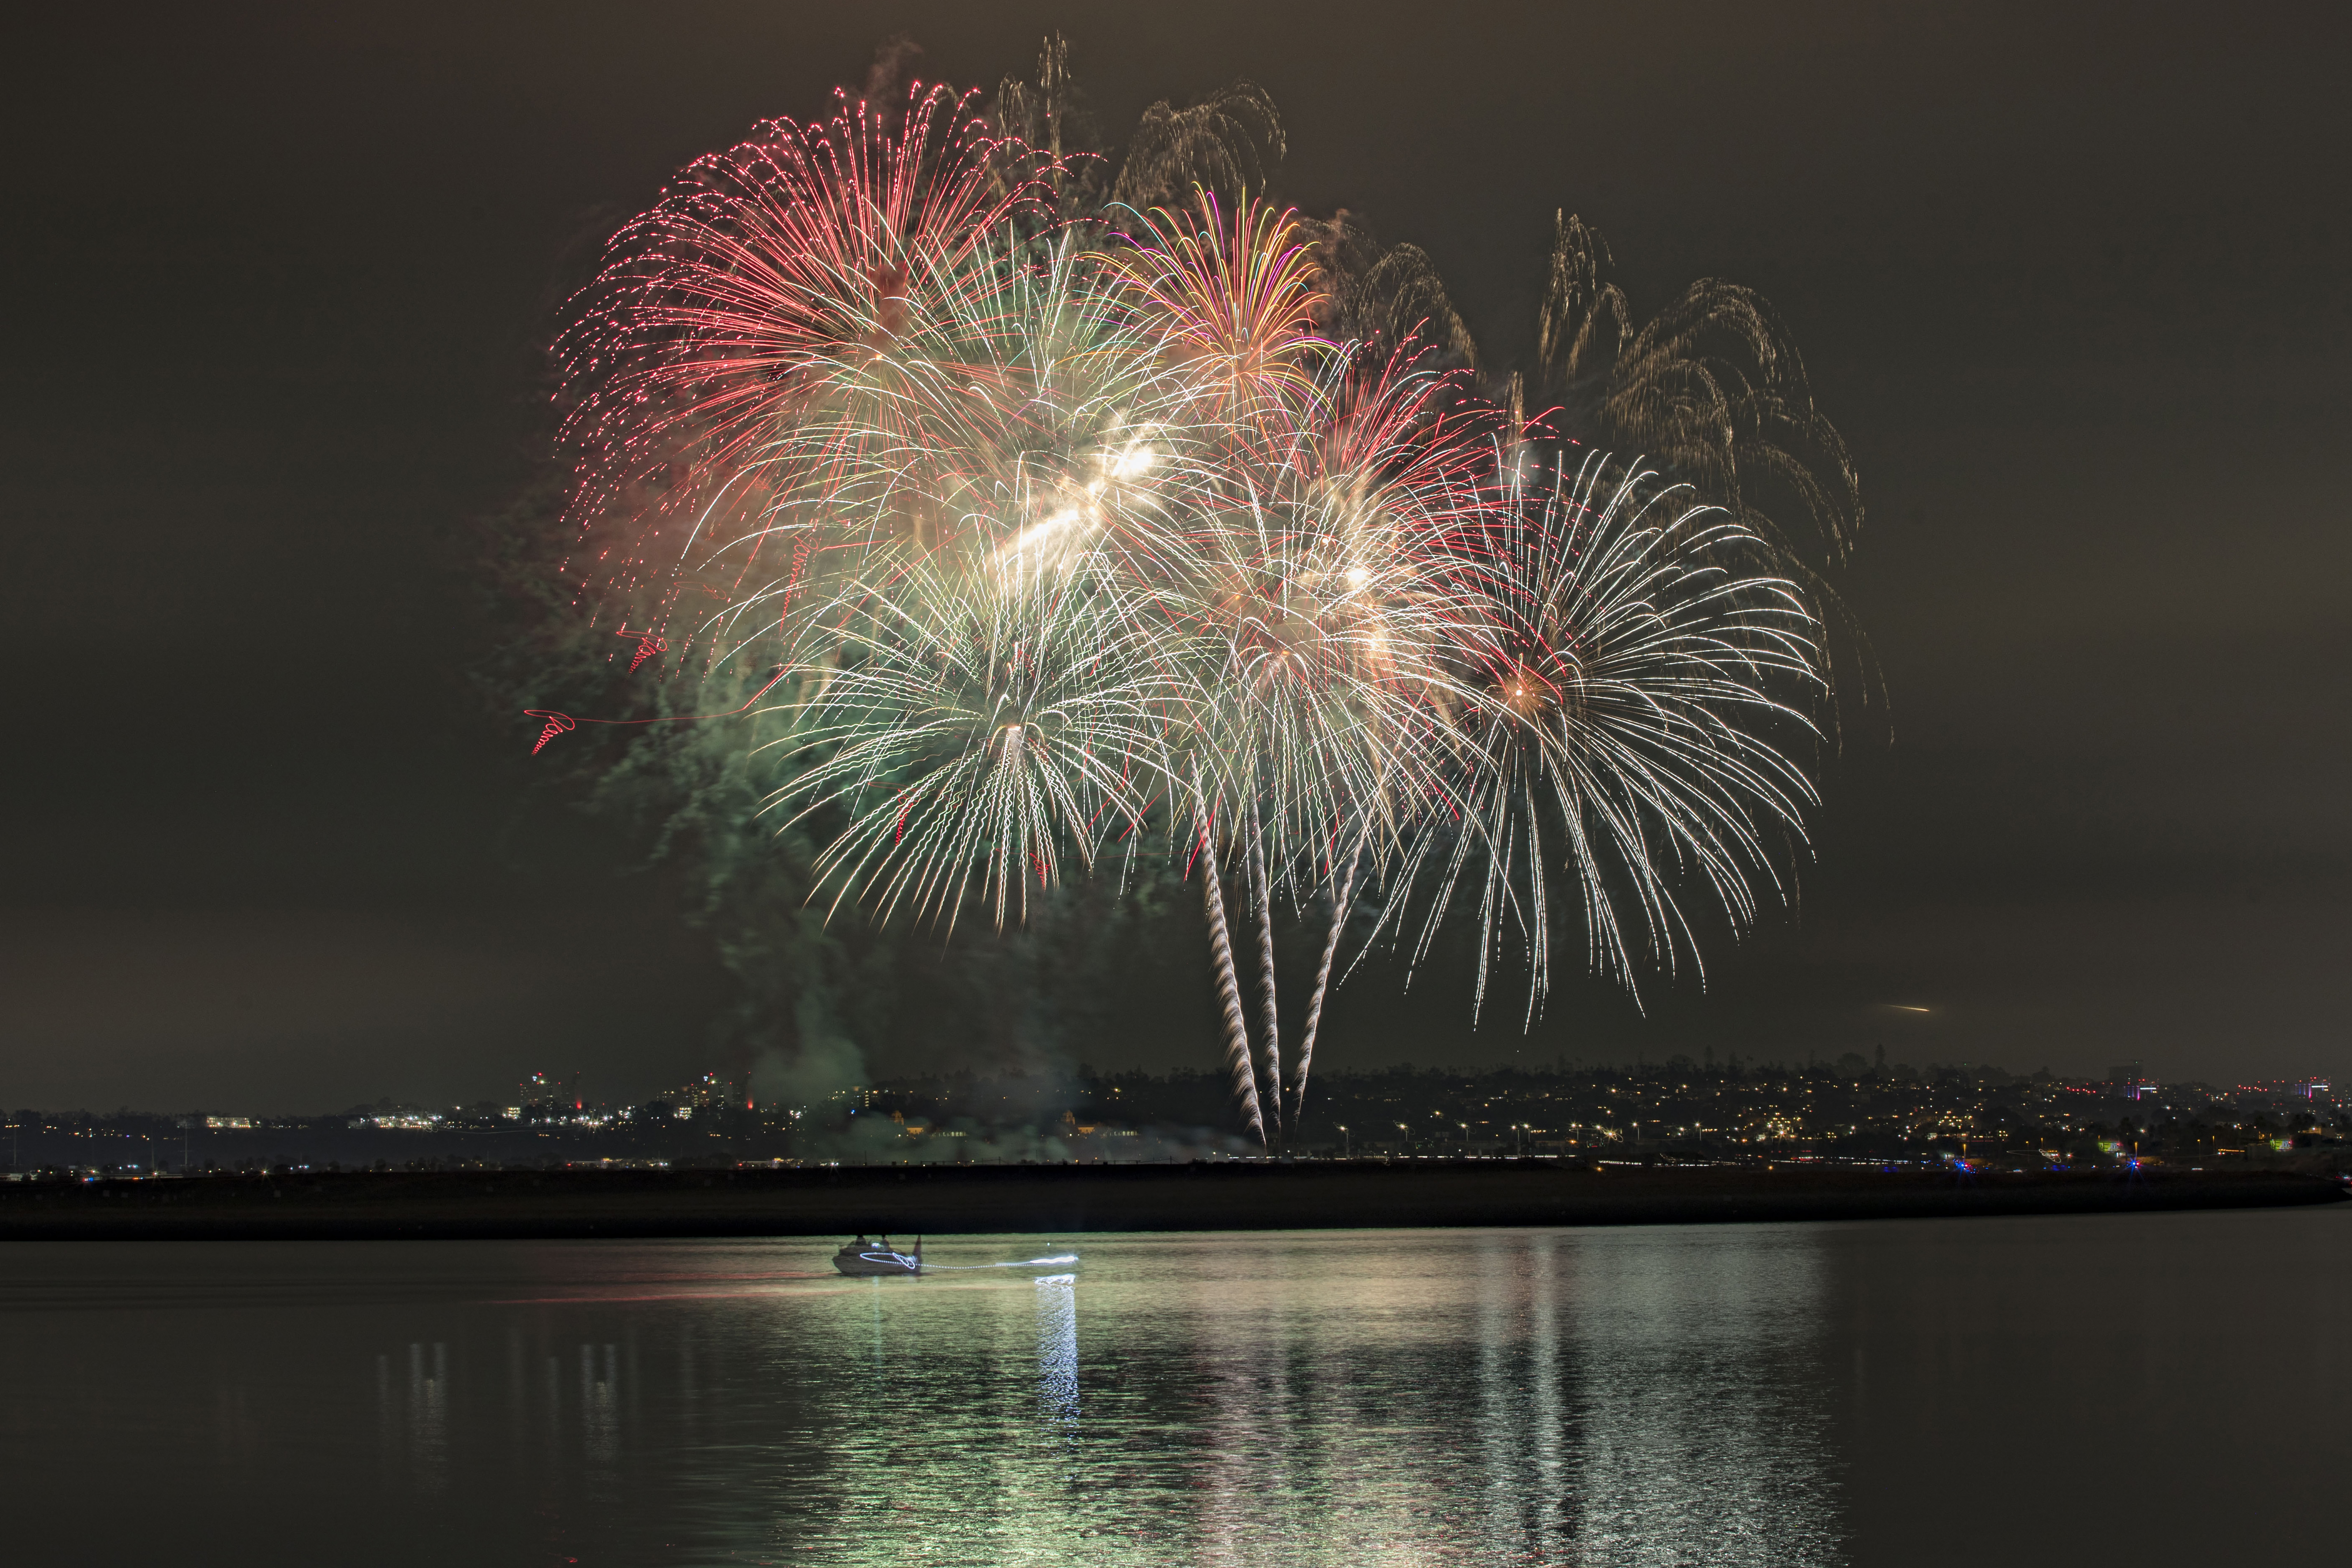 Residents Of San Diego, California Celebrate The 4th Of July Holiday Weekend